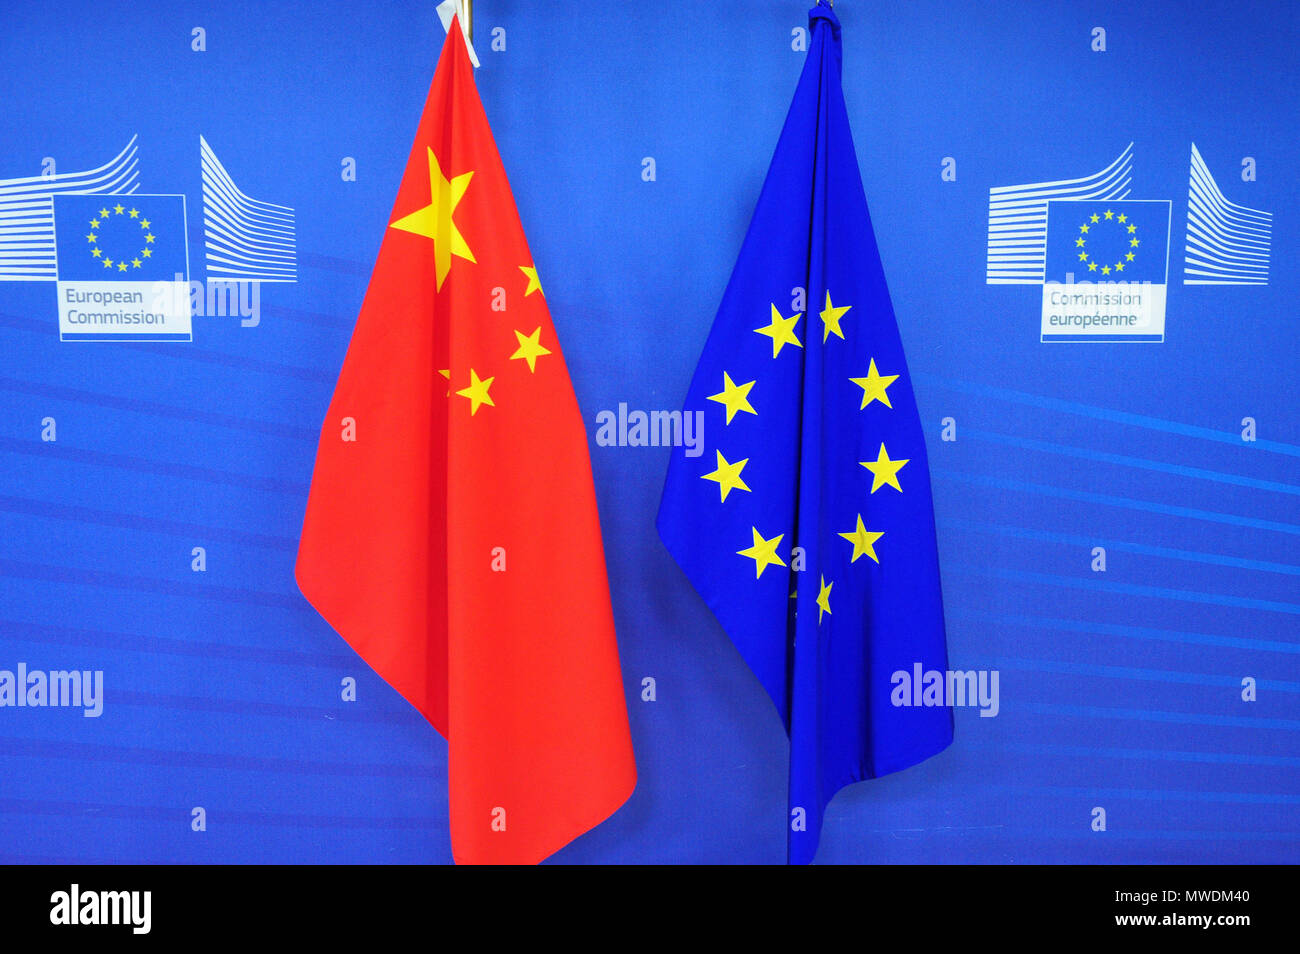 Brussels, Bxl, Belgium. 1st June, 2018. Chinese and European Union flags at European Commission headquarters in Brussels, Belgium on 01.06.2018 by Wiktor Dabkowski Credit: Wiktor Dabkowski/ZUMA Wire/Alamy Live News - Stock Image